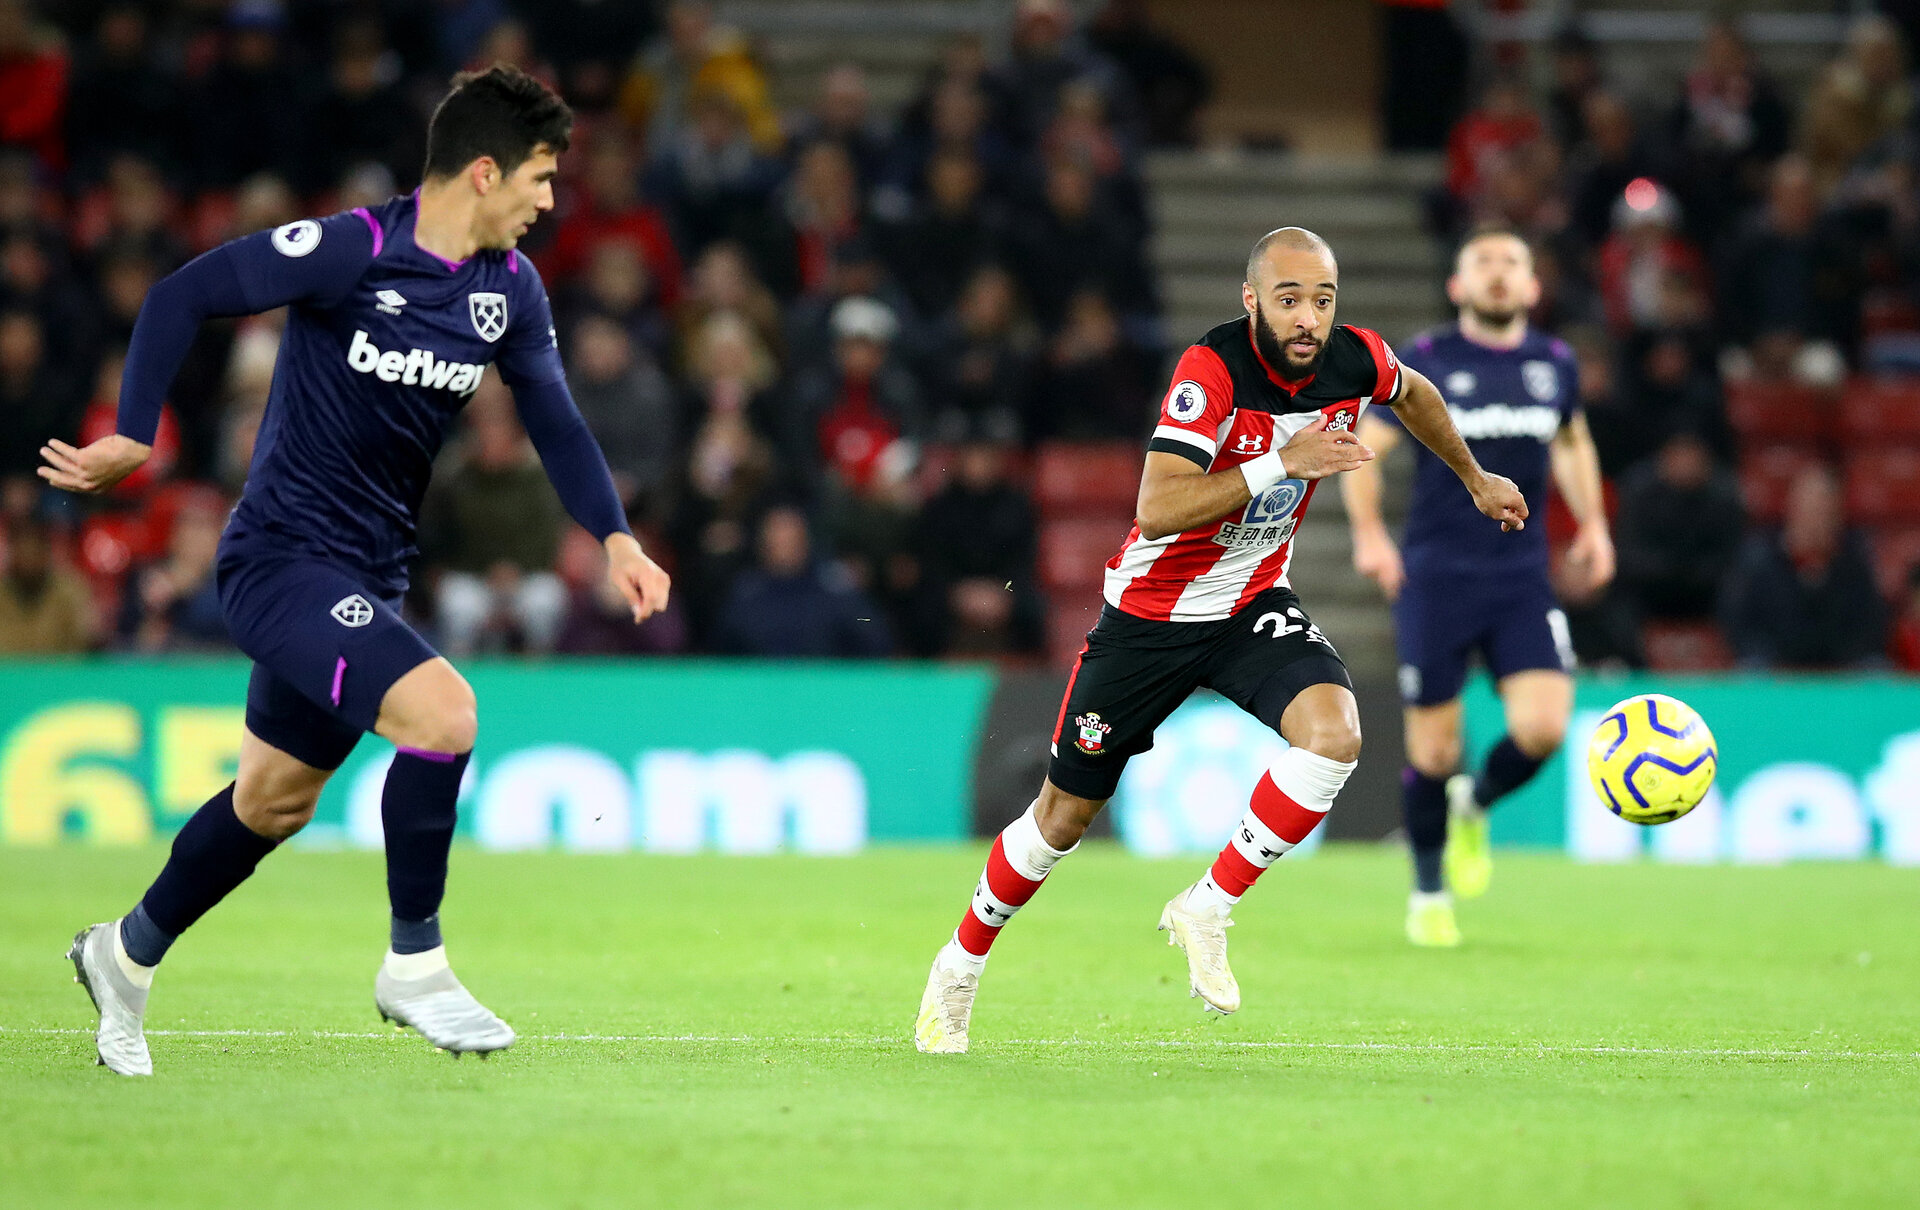 SOUTHAMPTON, ENGLAND - DECEMBER 14: Nathan Redmond of Southampton during the Premier League match between Southampton FC and West Ham United at St Mary's Stadium on December 14, 2019 in Southampton, United Kingdom. (Photo by Matt Watson/Southampton FC via Getty Images)